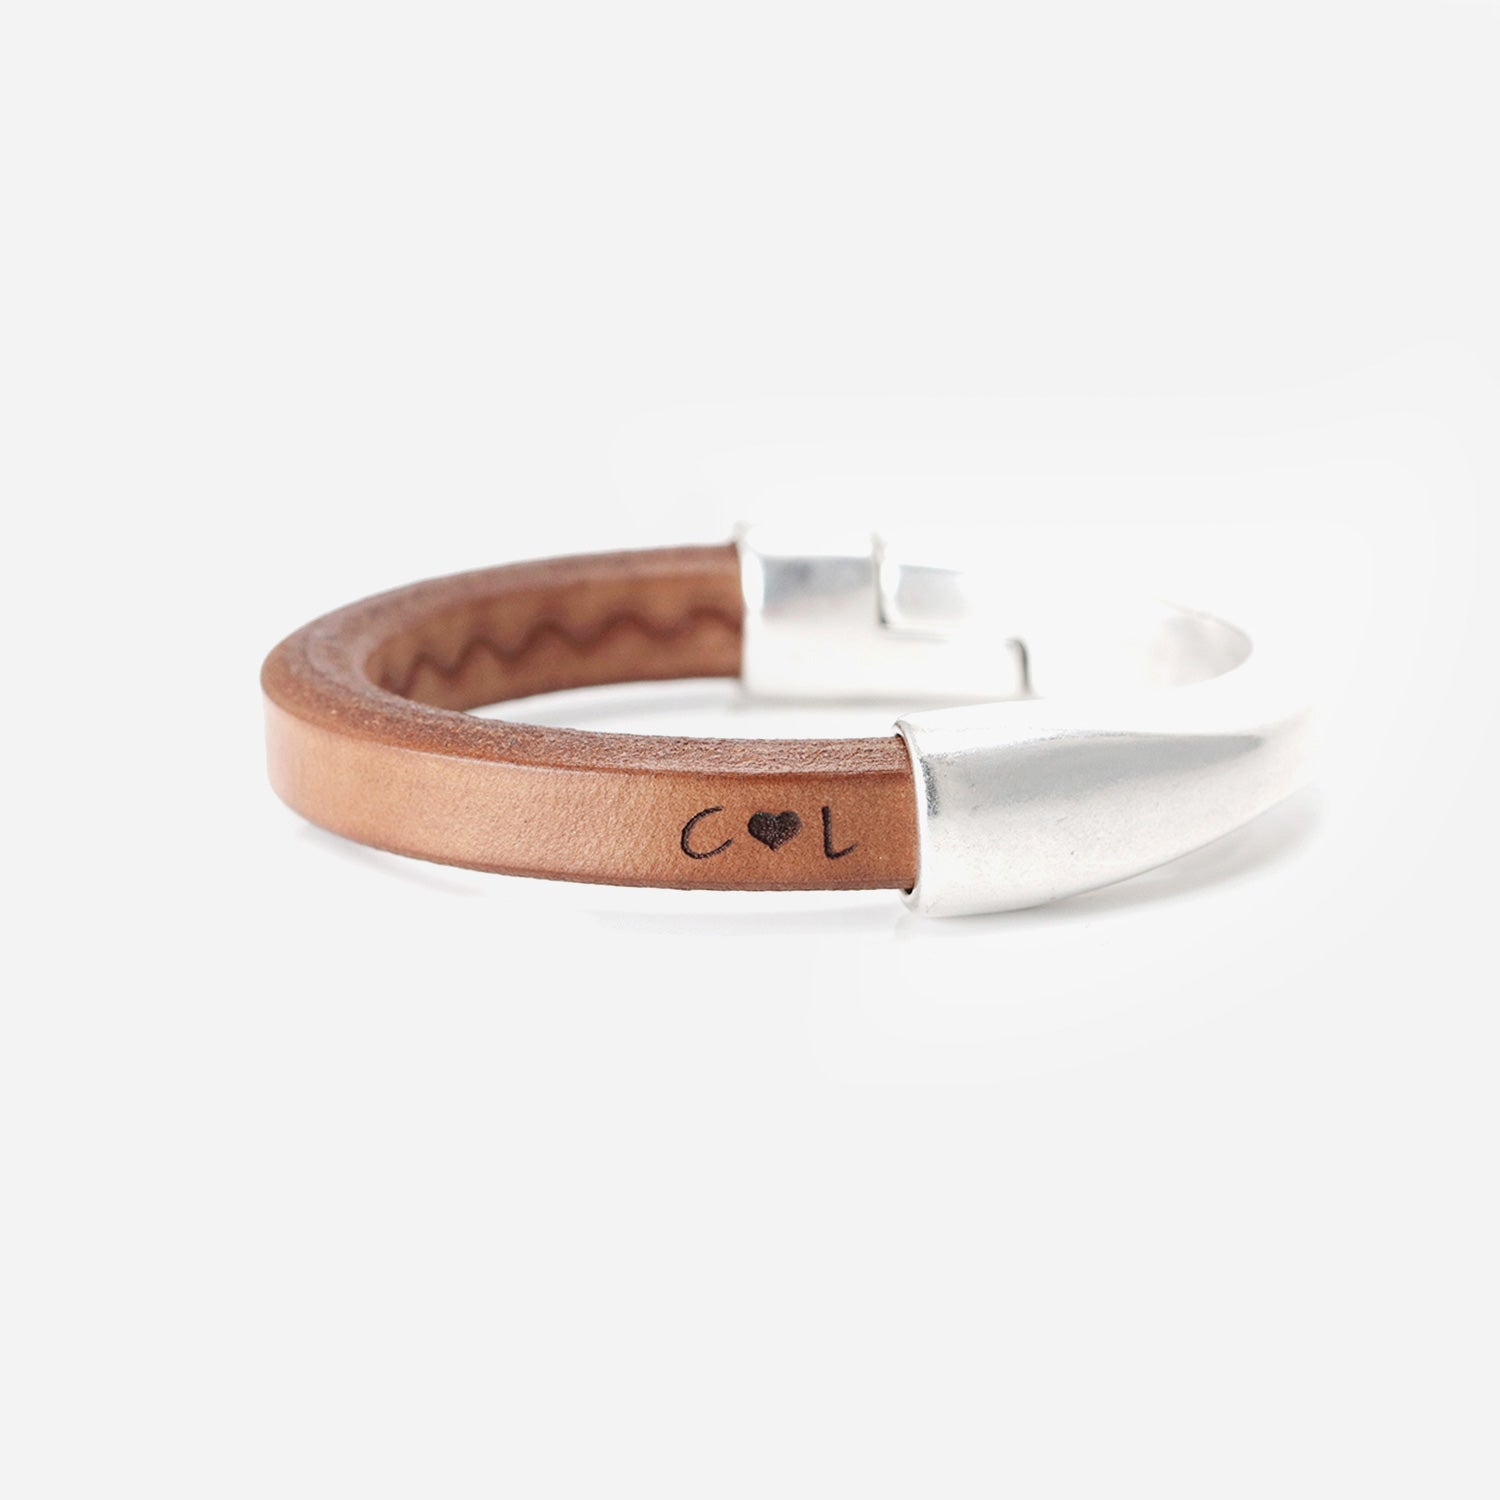 3rd Anniversary gift for her   Personalized Leather Bracelet for Women